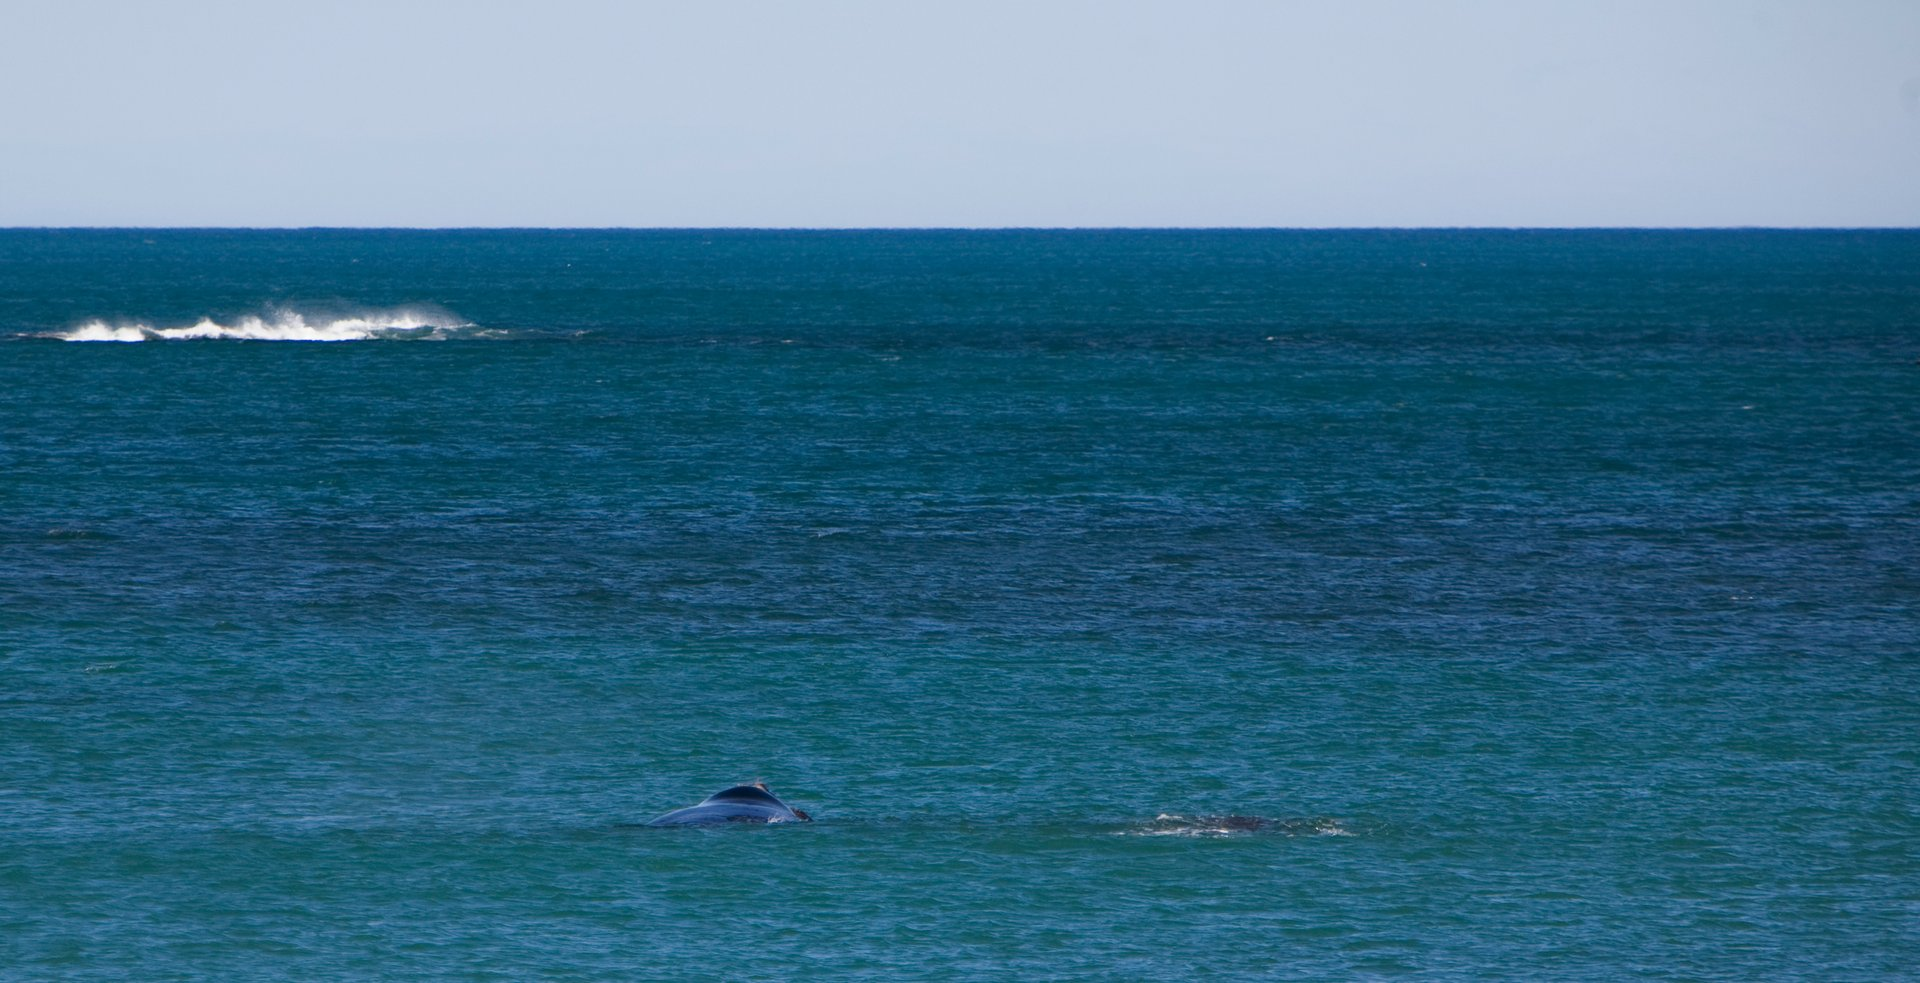 Whale Watching in South Australia - Best Season 2020